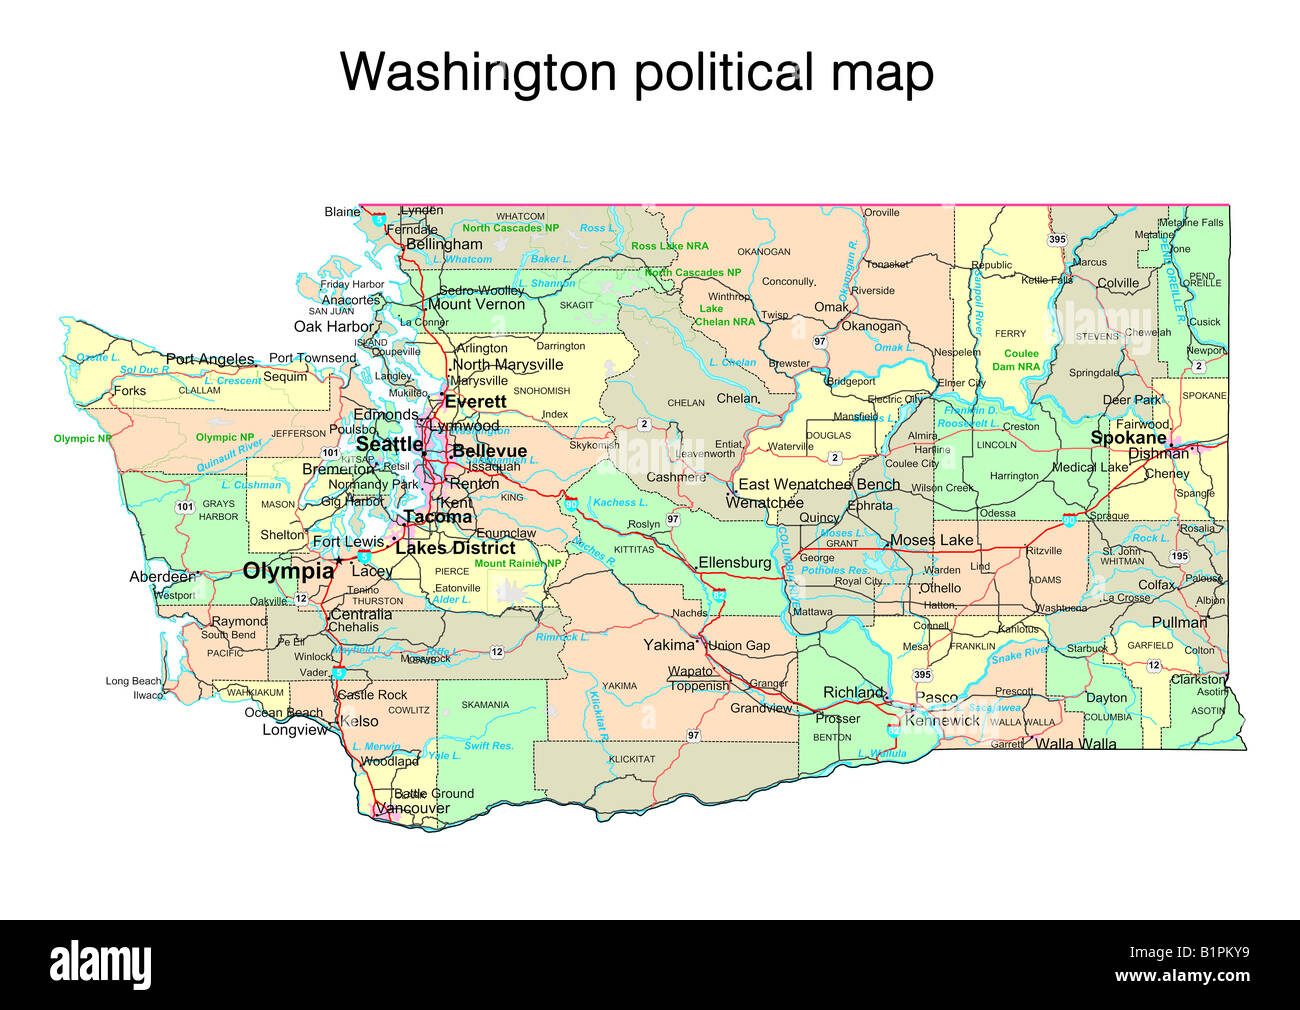 Washington State Political Map Stock Photo Royalty Free Image - Washington st map